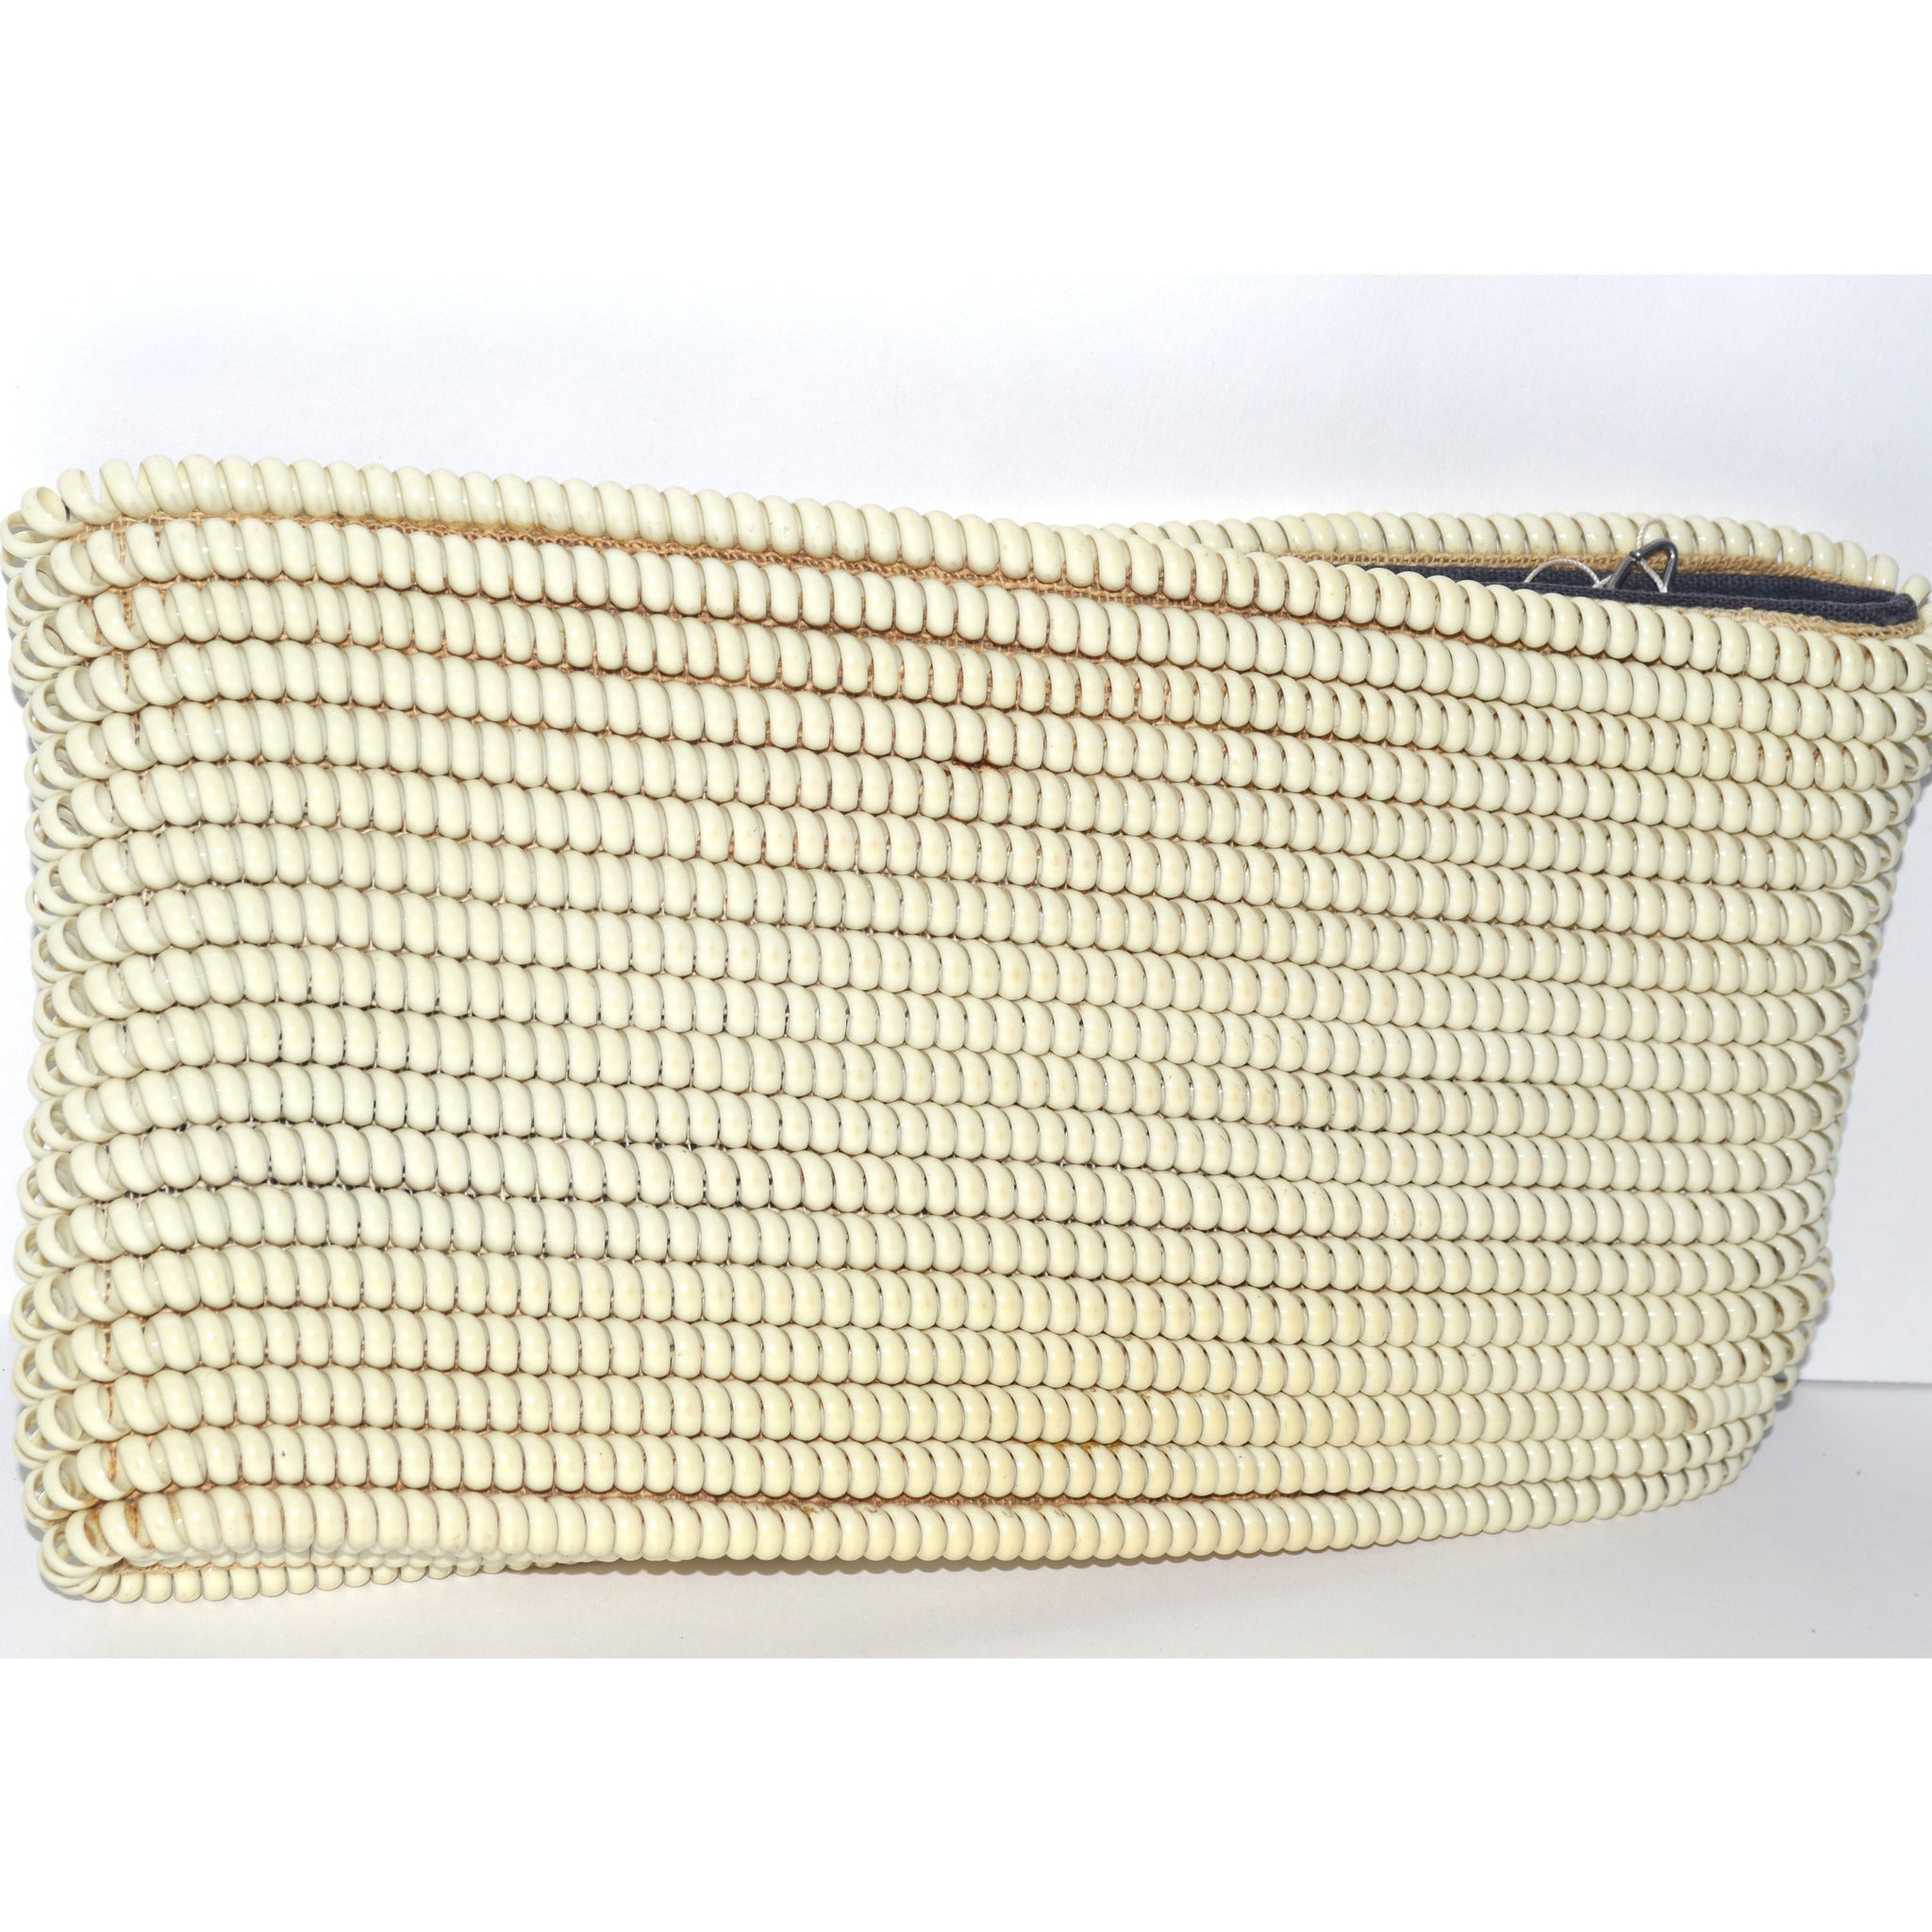 Vintage Ivory Telephone Cord Clutch Purse